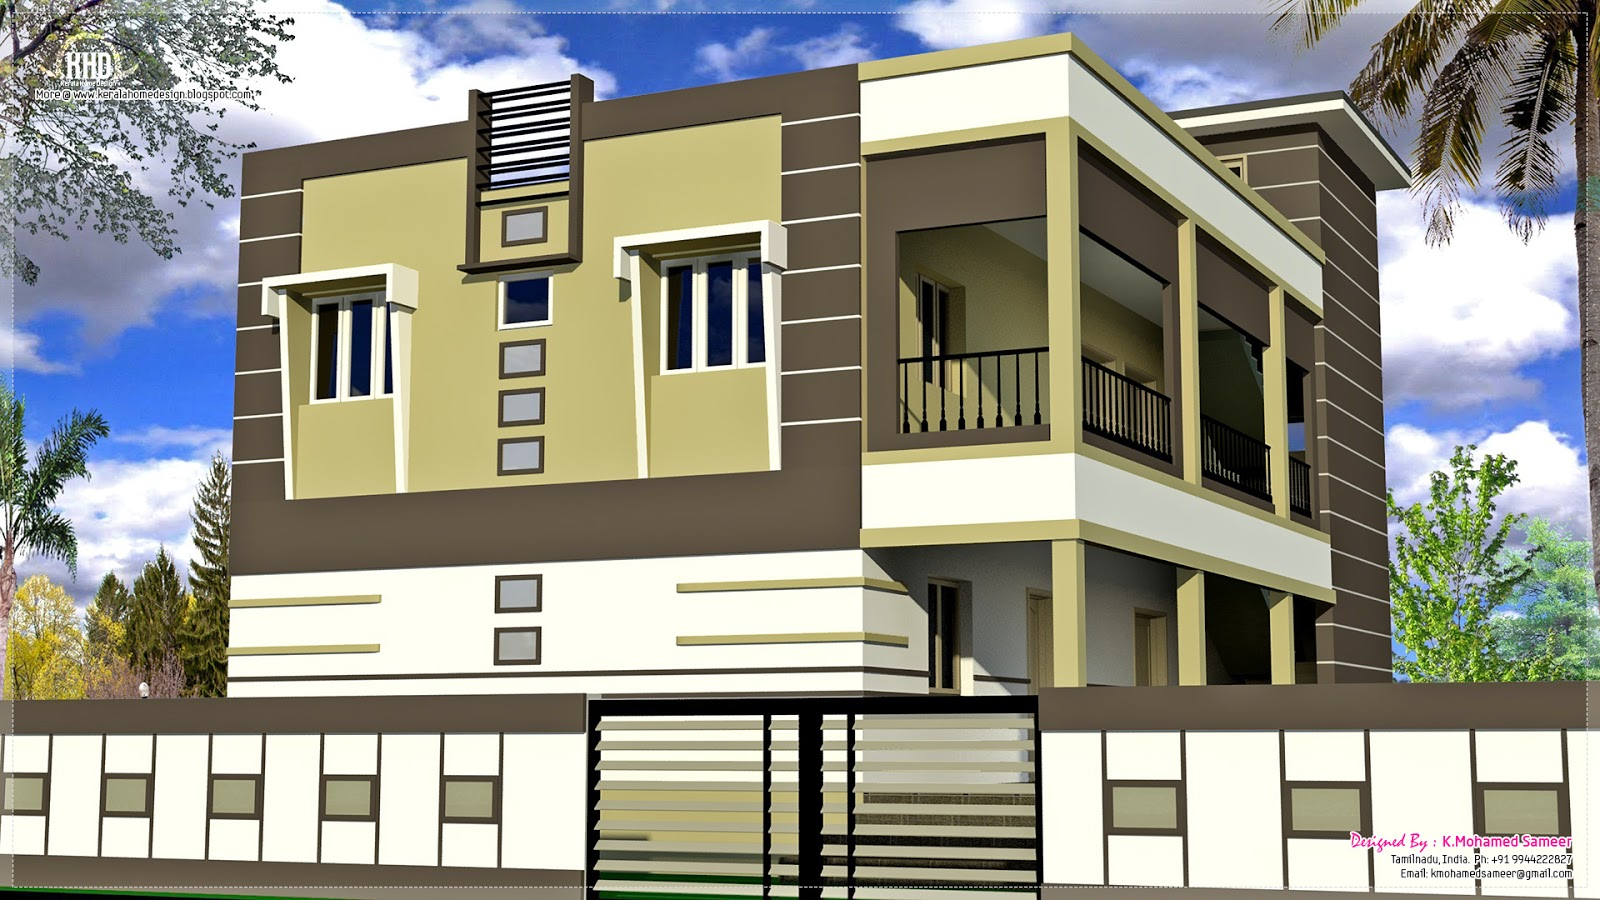 2 south indian house exterior designs kerala home design 2 floor house